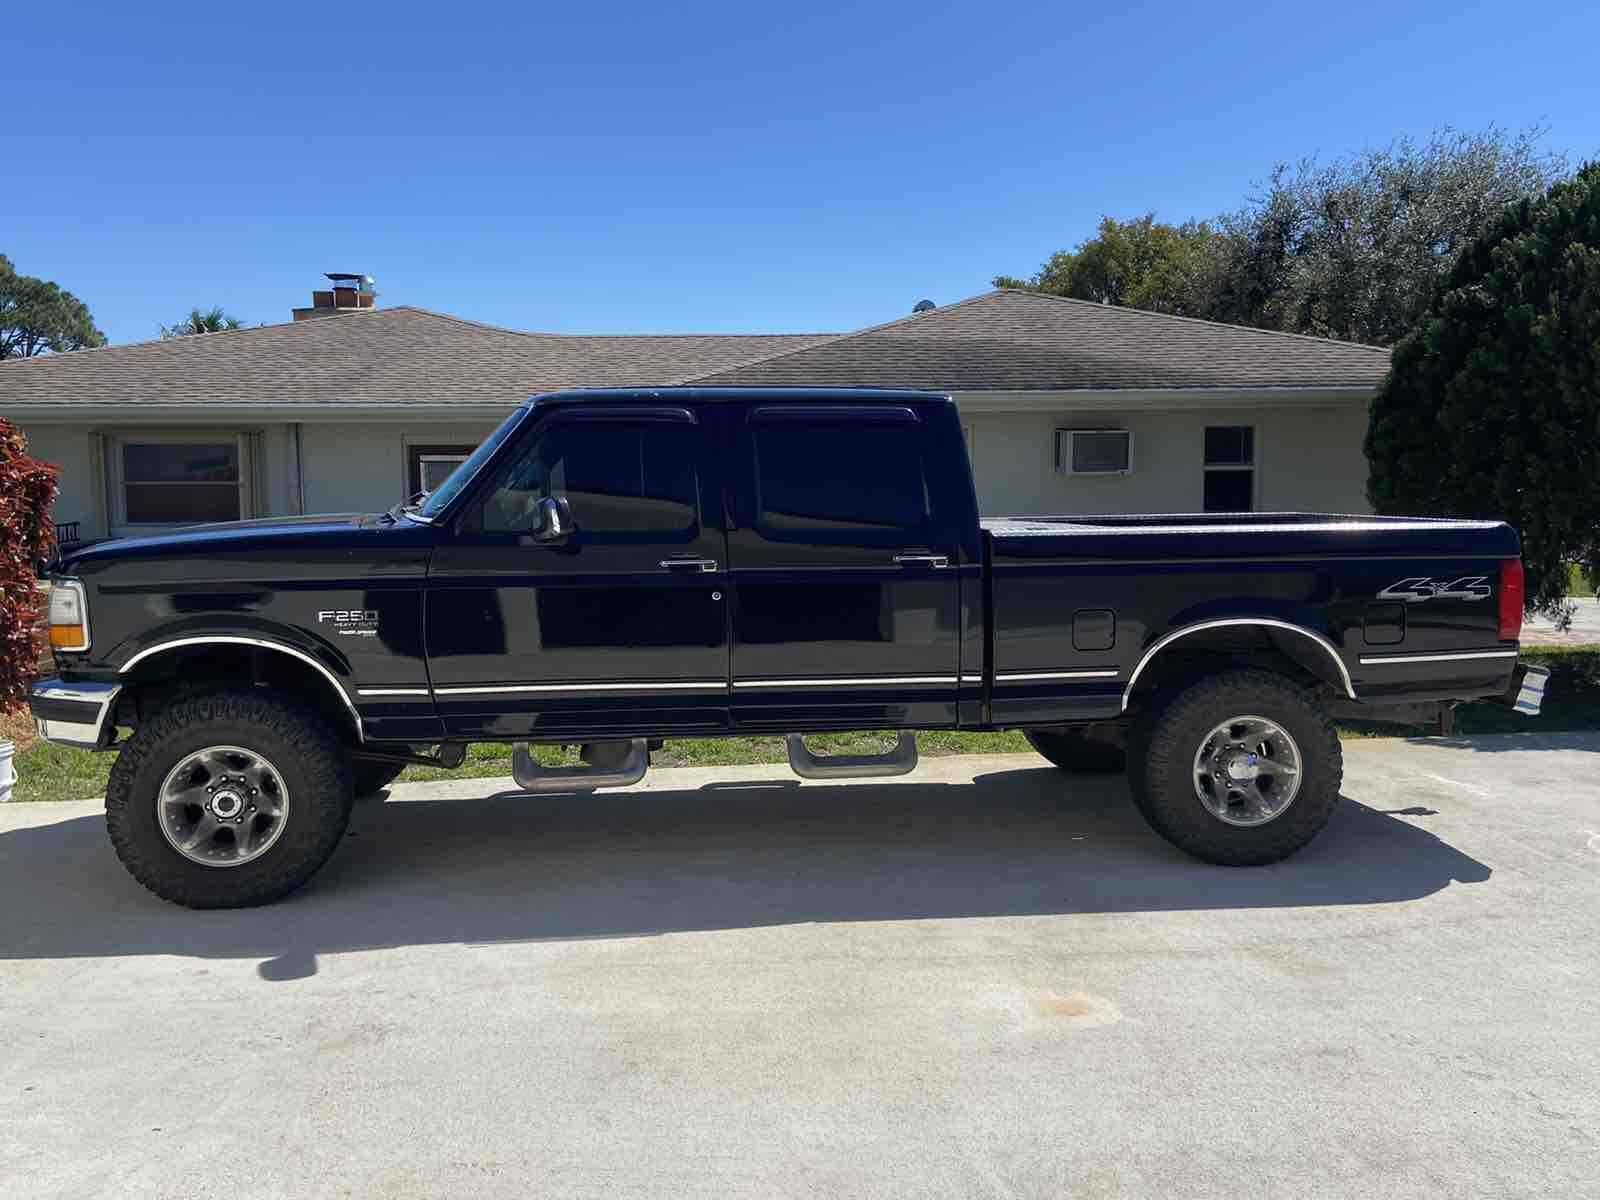 Buy Now 1 600 Contact Goldbeckm4 Gmail Com In 2020 Ford